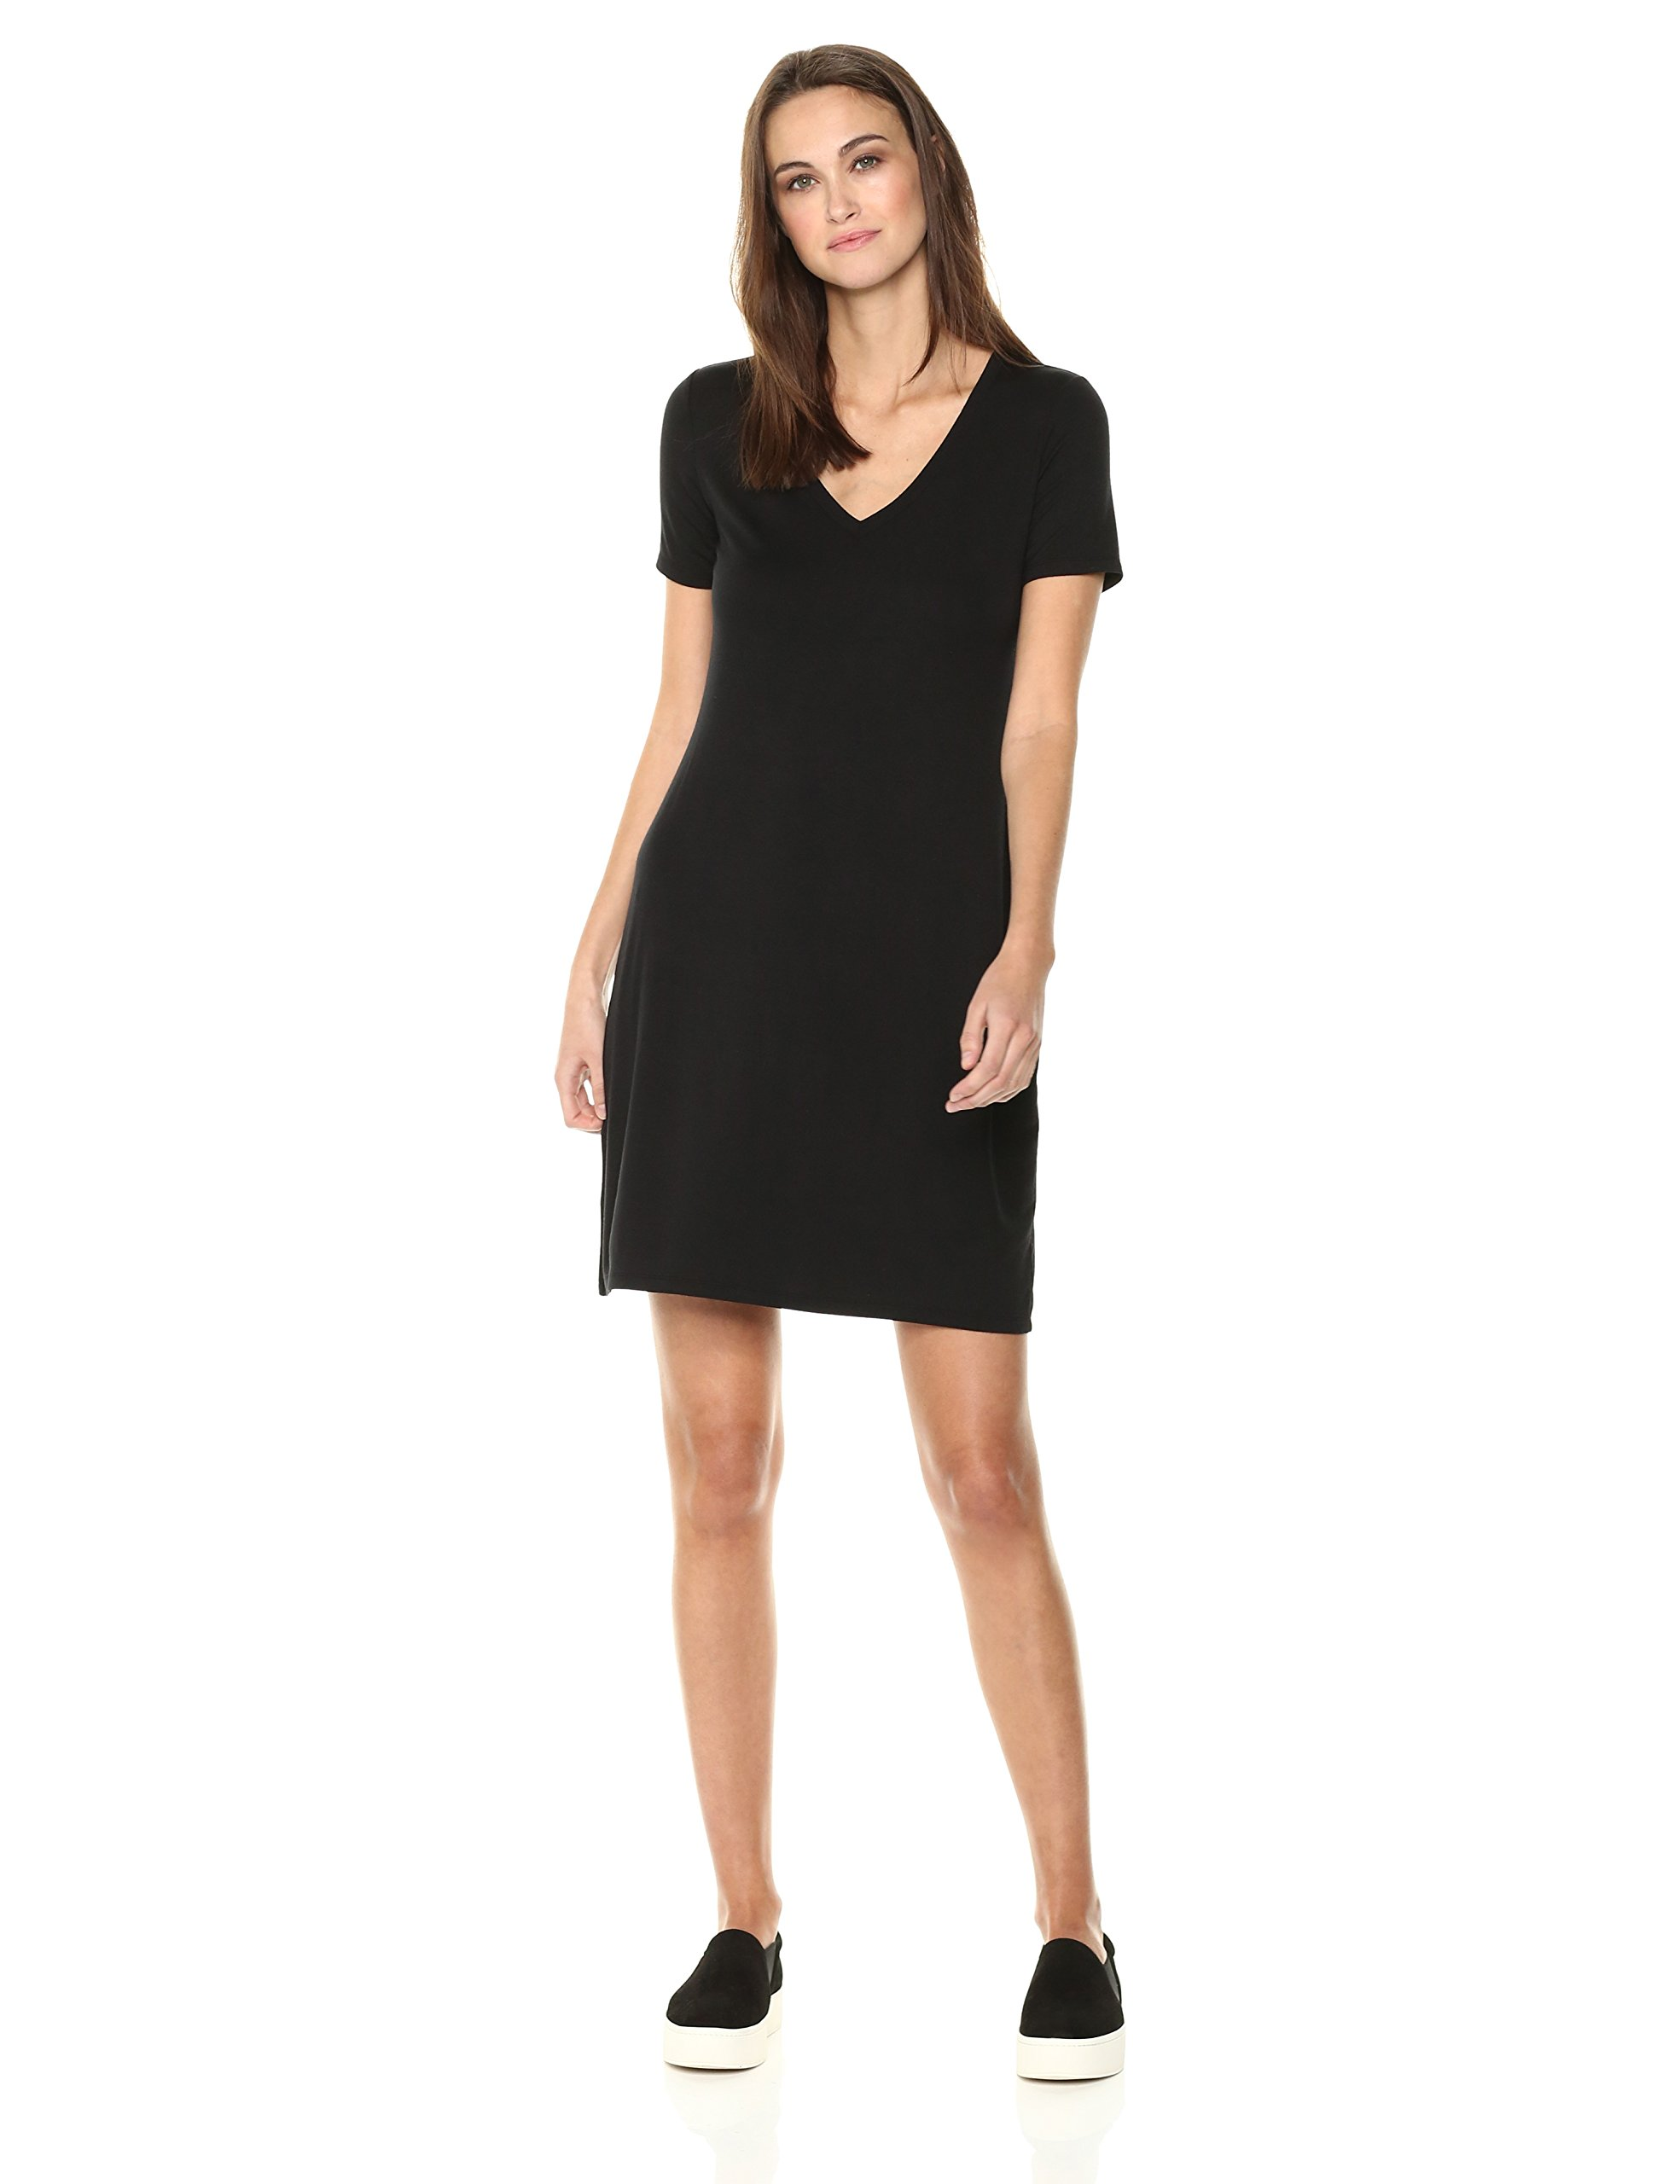 Daily Ritual Women's Jersey Short-Sleeve V-Neck T-Shirt Dress, Black, M